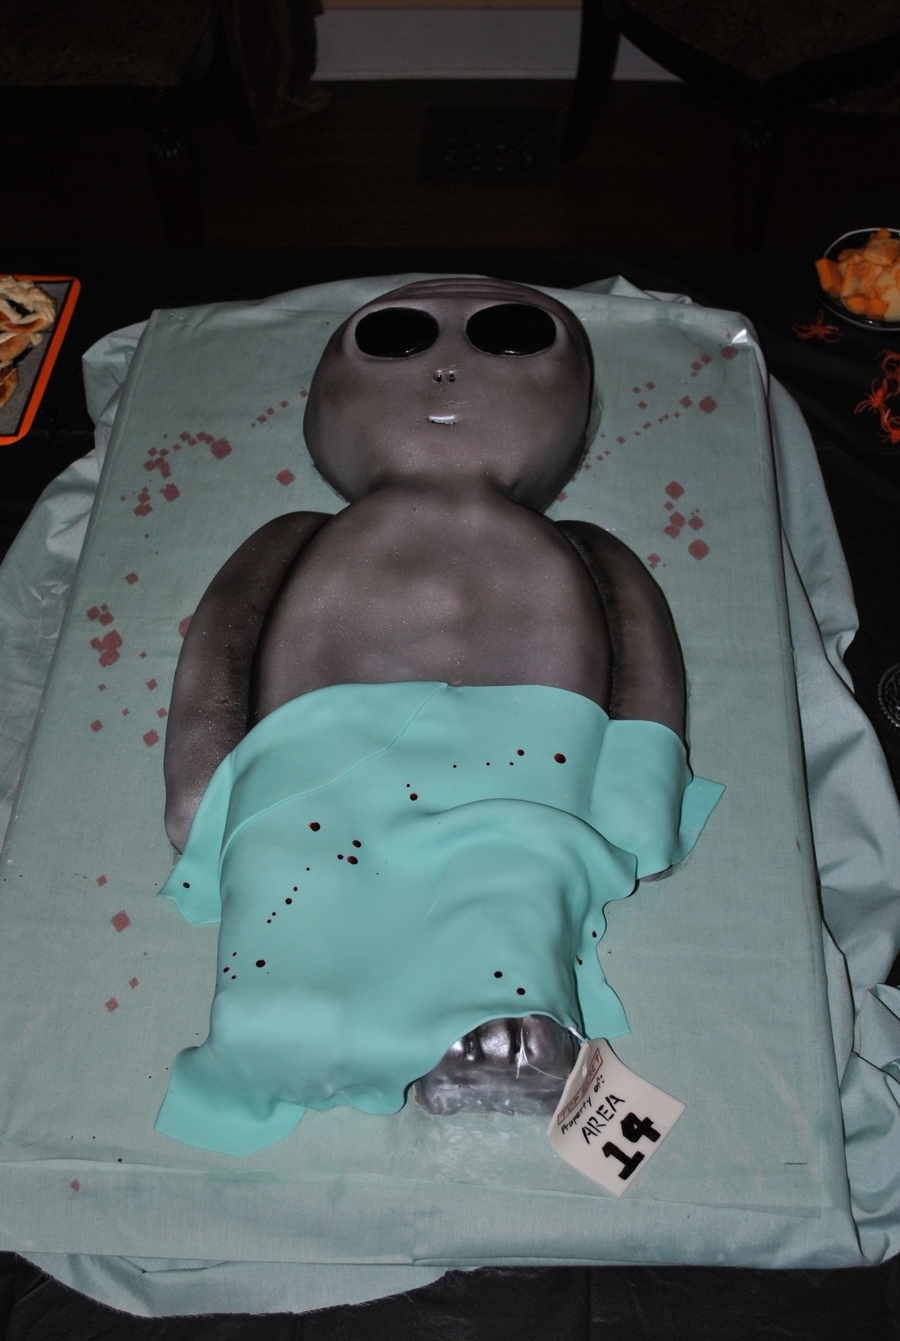 Alien Autopsy Halloween Birthday Party Cakecentral Com